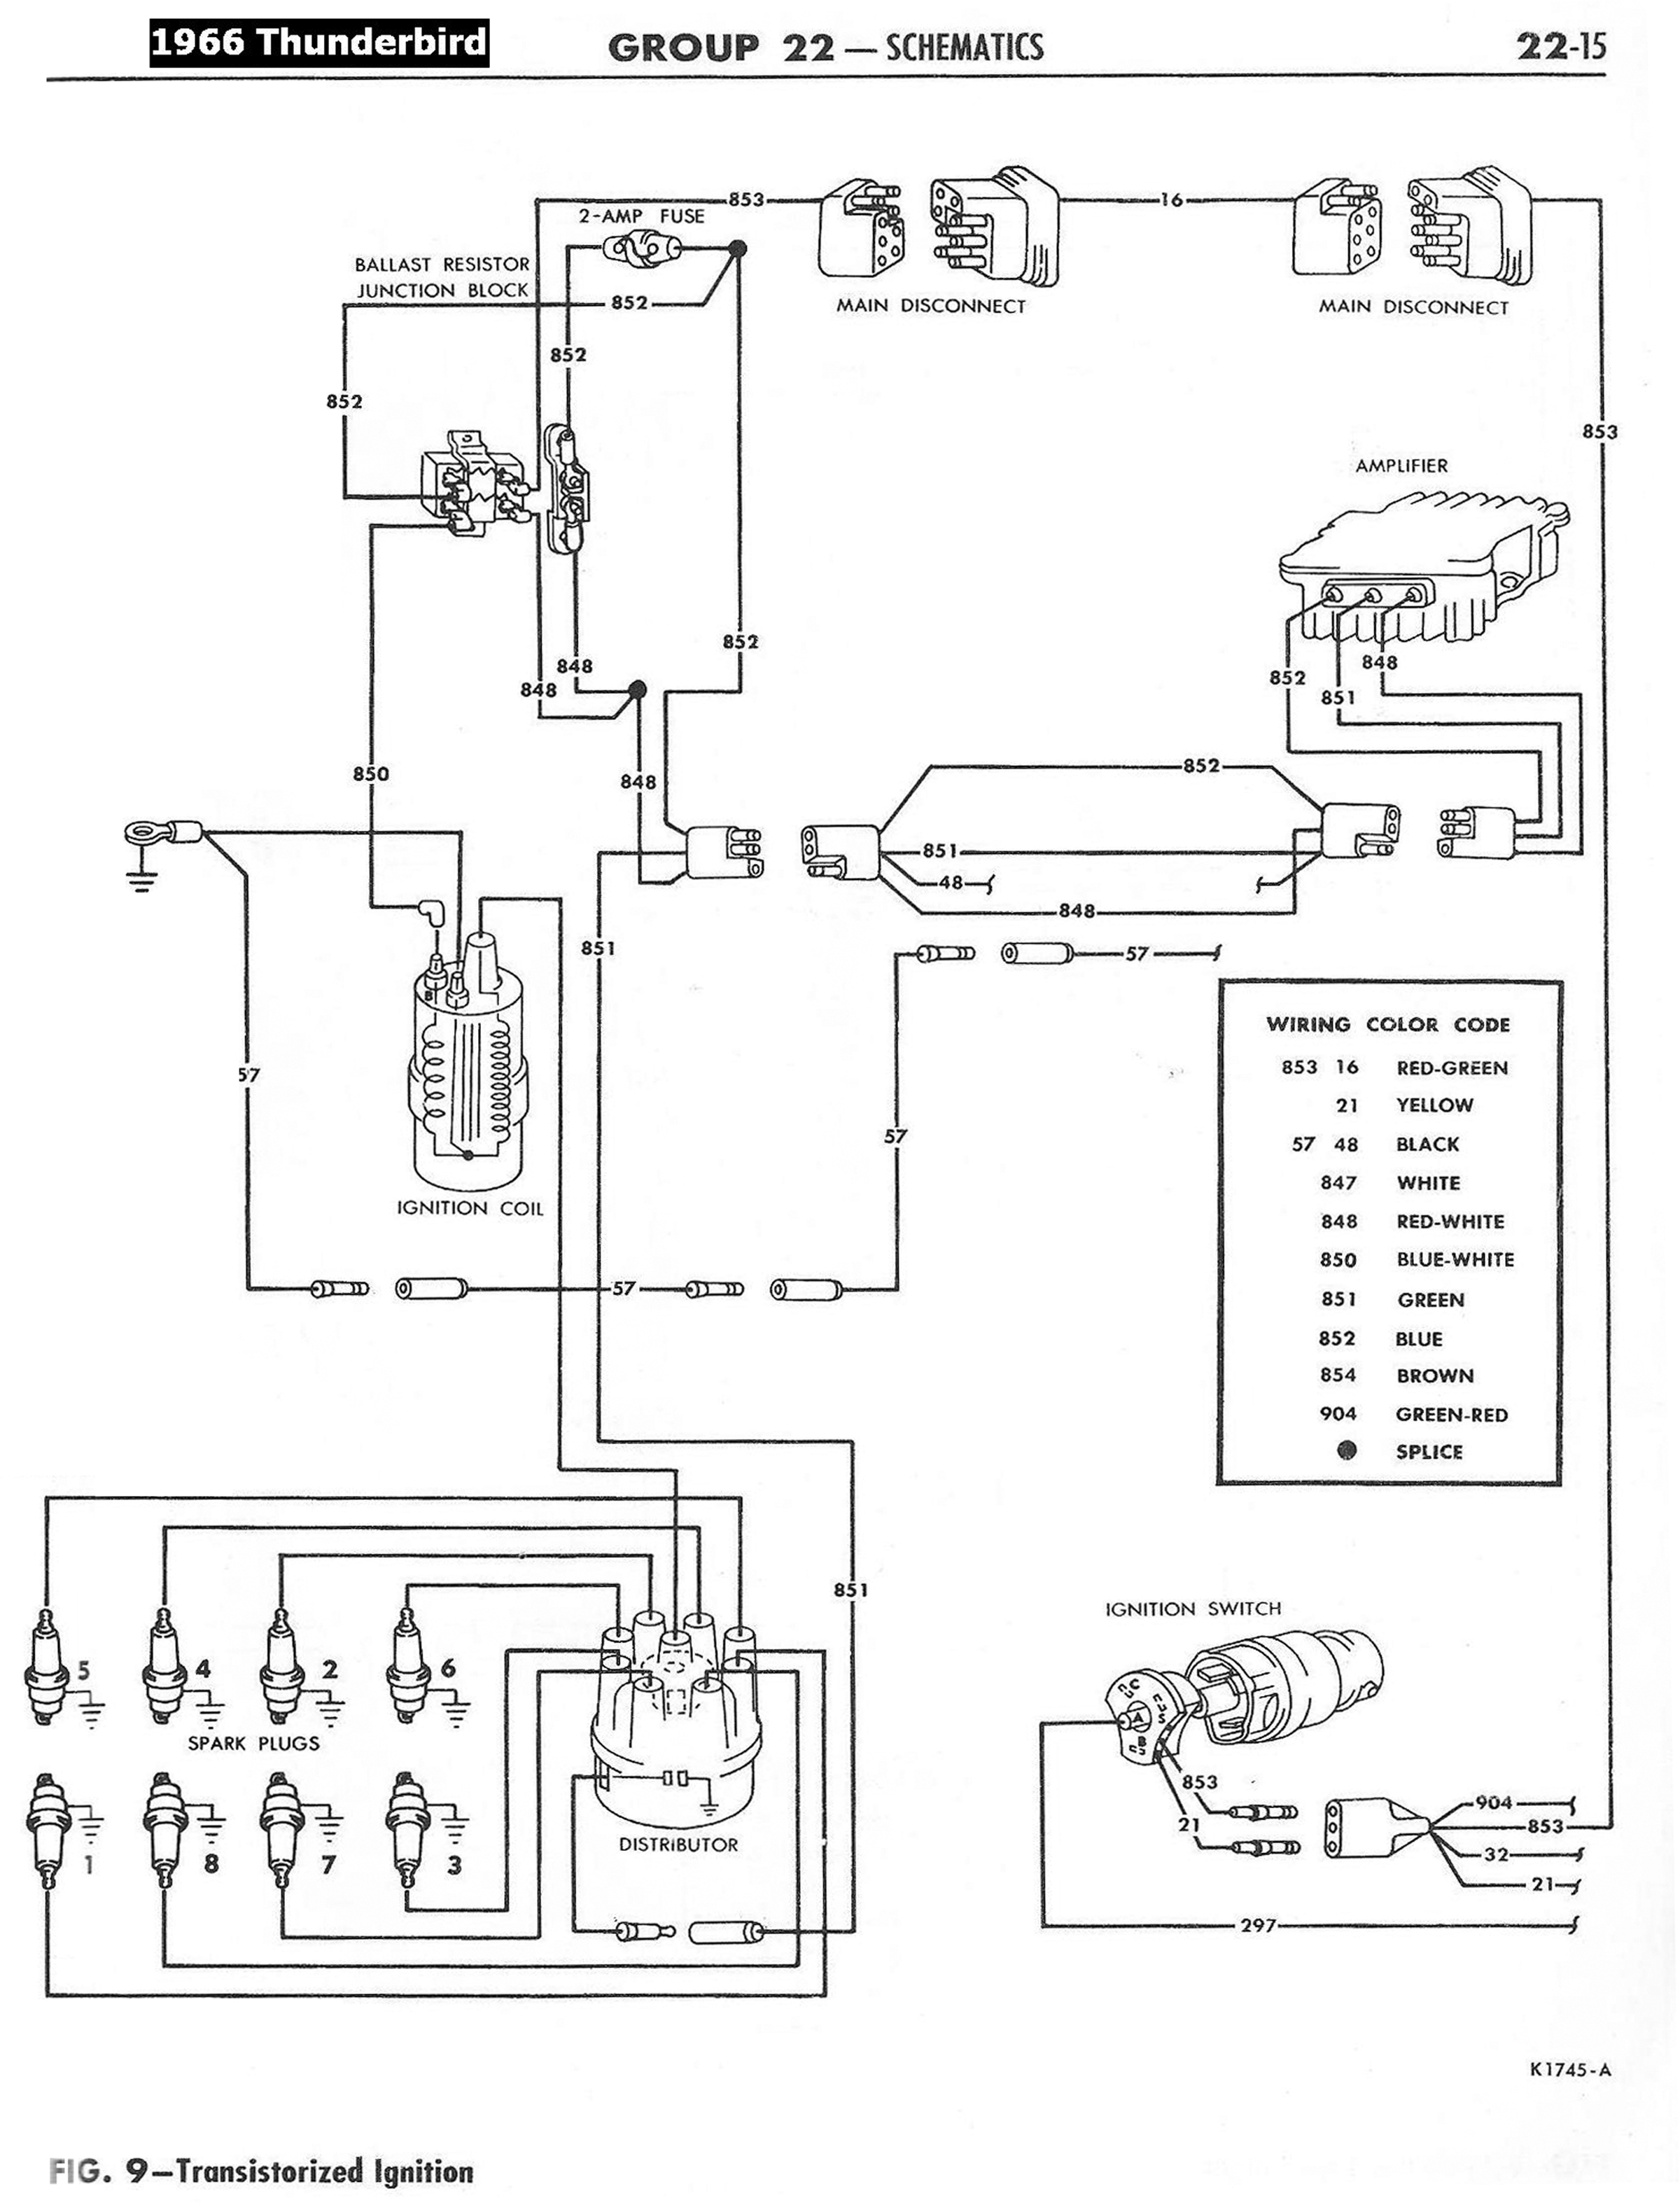 66TbirdTransistorizedIgnitionSchematic transistor type ignition squarebirds, rocketbirds, and fifties 66 Thunderbird Wiring Diagram at edmiracle.co